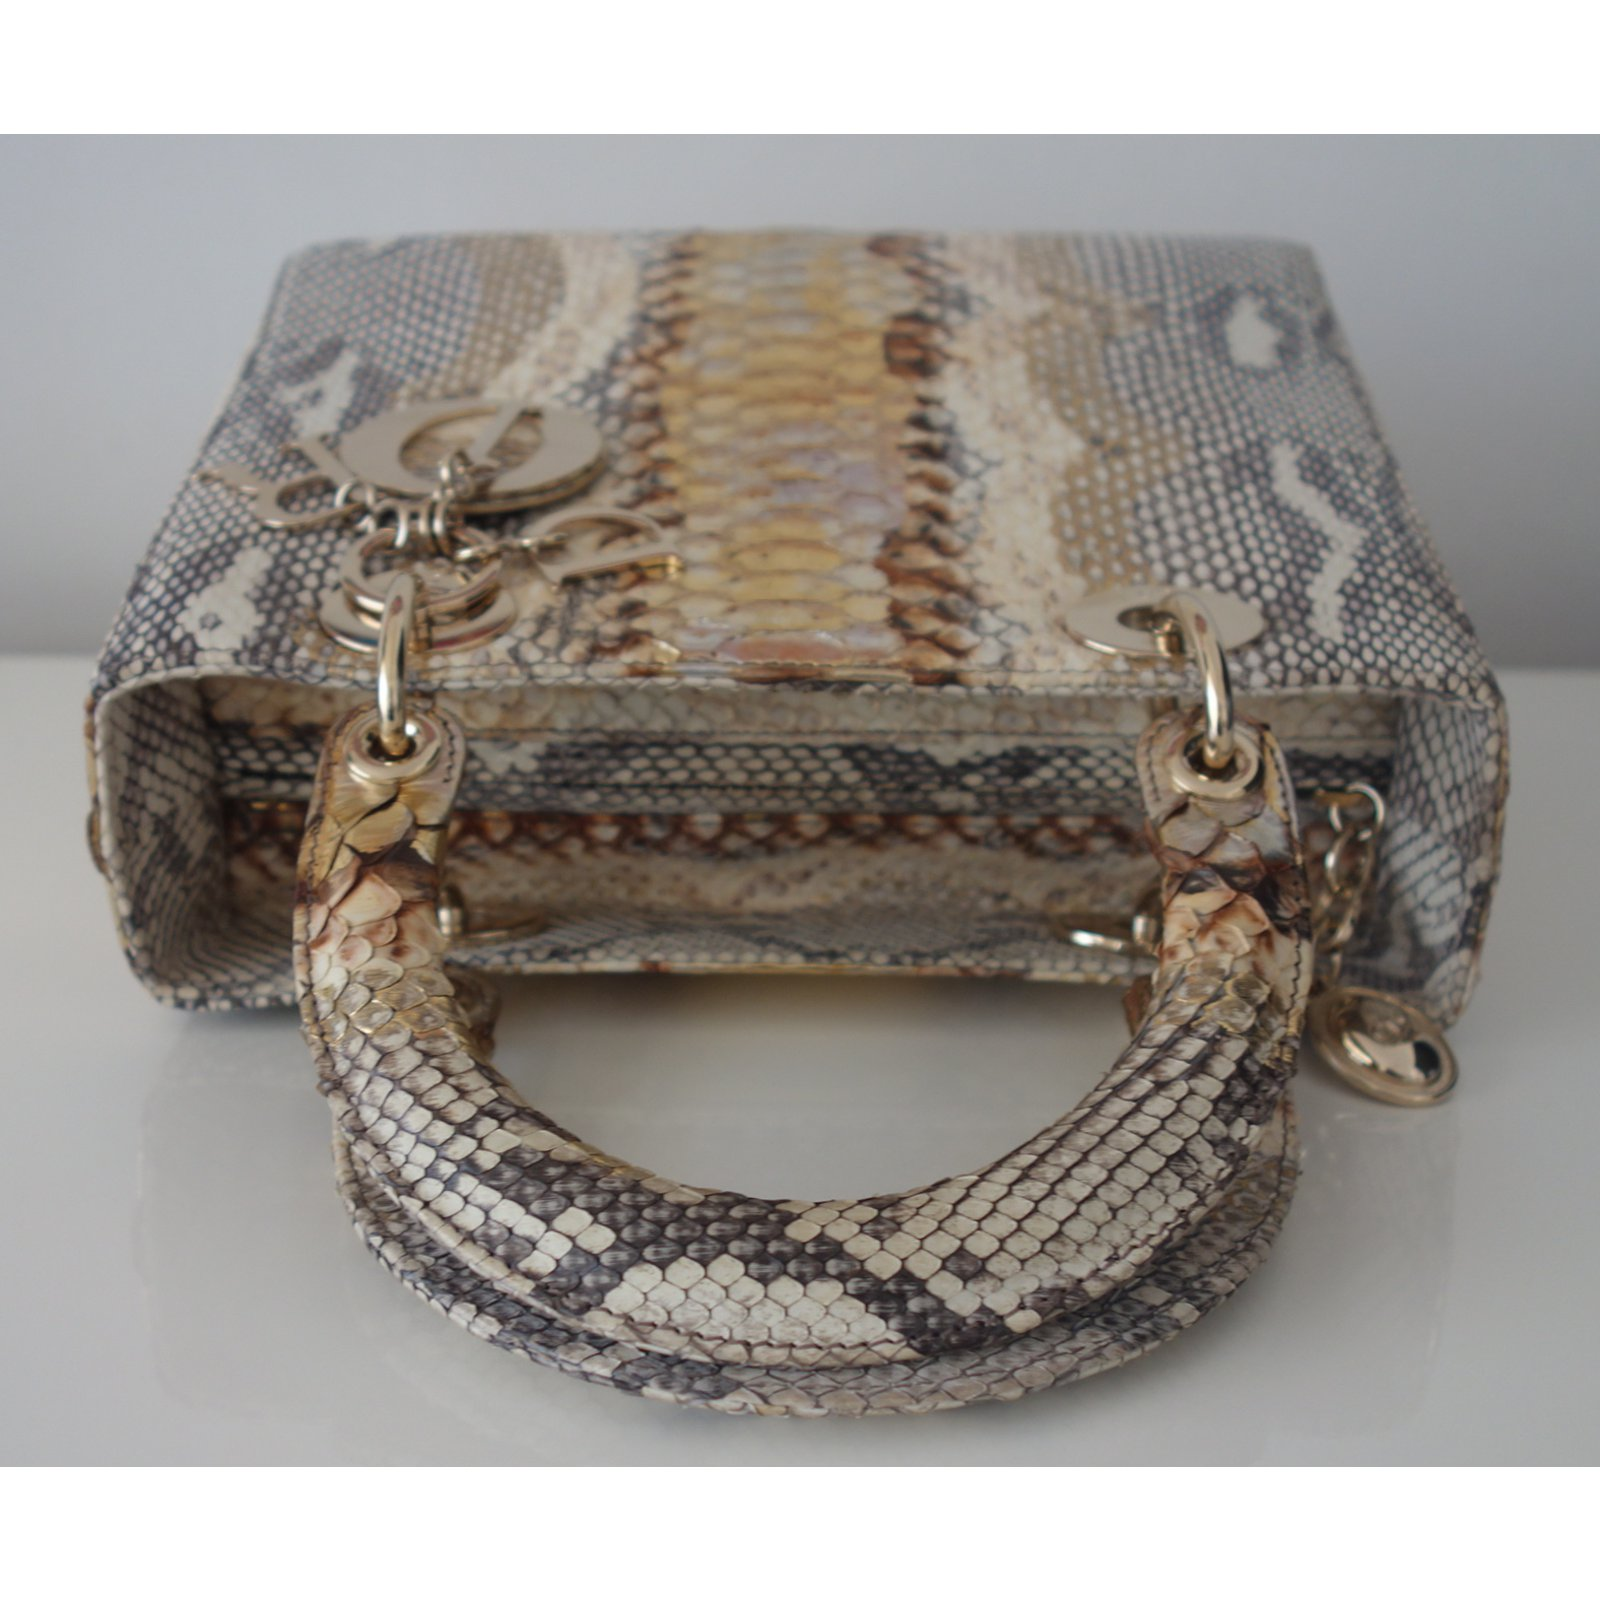 2bed1d537b4 Christian Dior Dior python and Handbags Exotic leather Golden ref.17653 -  Joli Closet